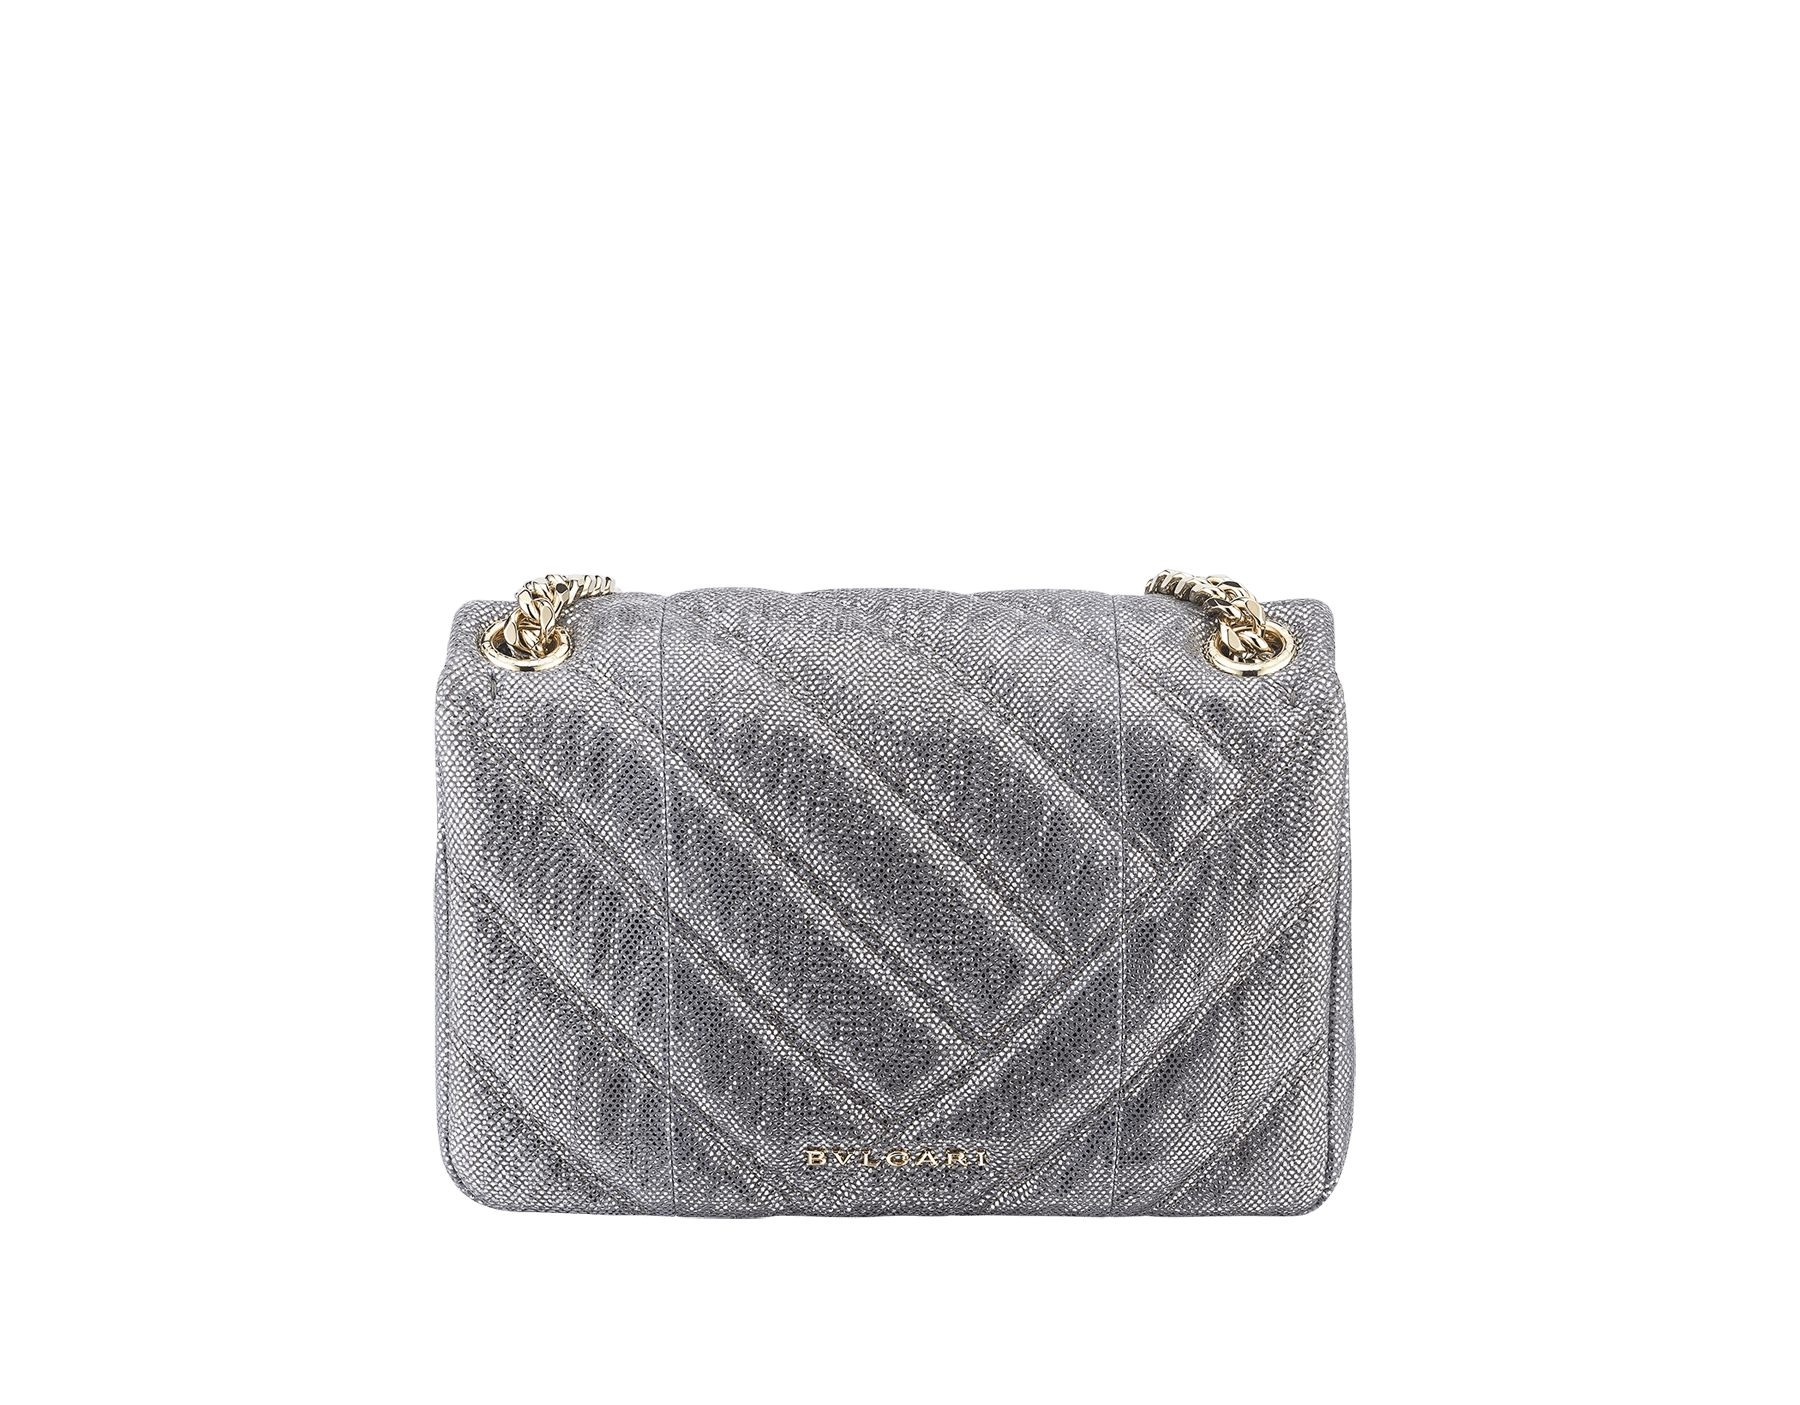 Serpenti Cabochon shoulder bag in soft matelassé charcoal diamond metallic karung skin with graphic motif. Snakehead closure in light gold plated brass decorated with matte black and glitter charcoal diamond enamel, and black onyx eyes. 288617 image 3